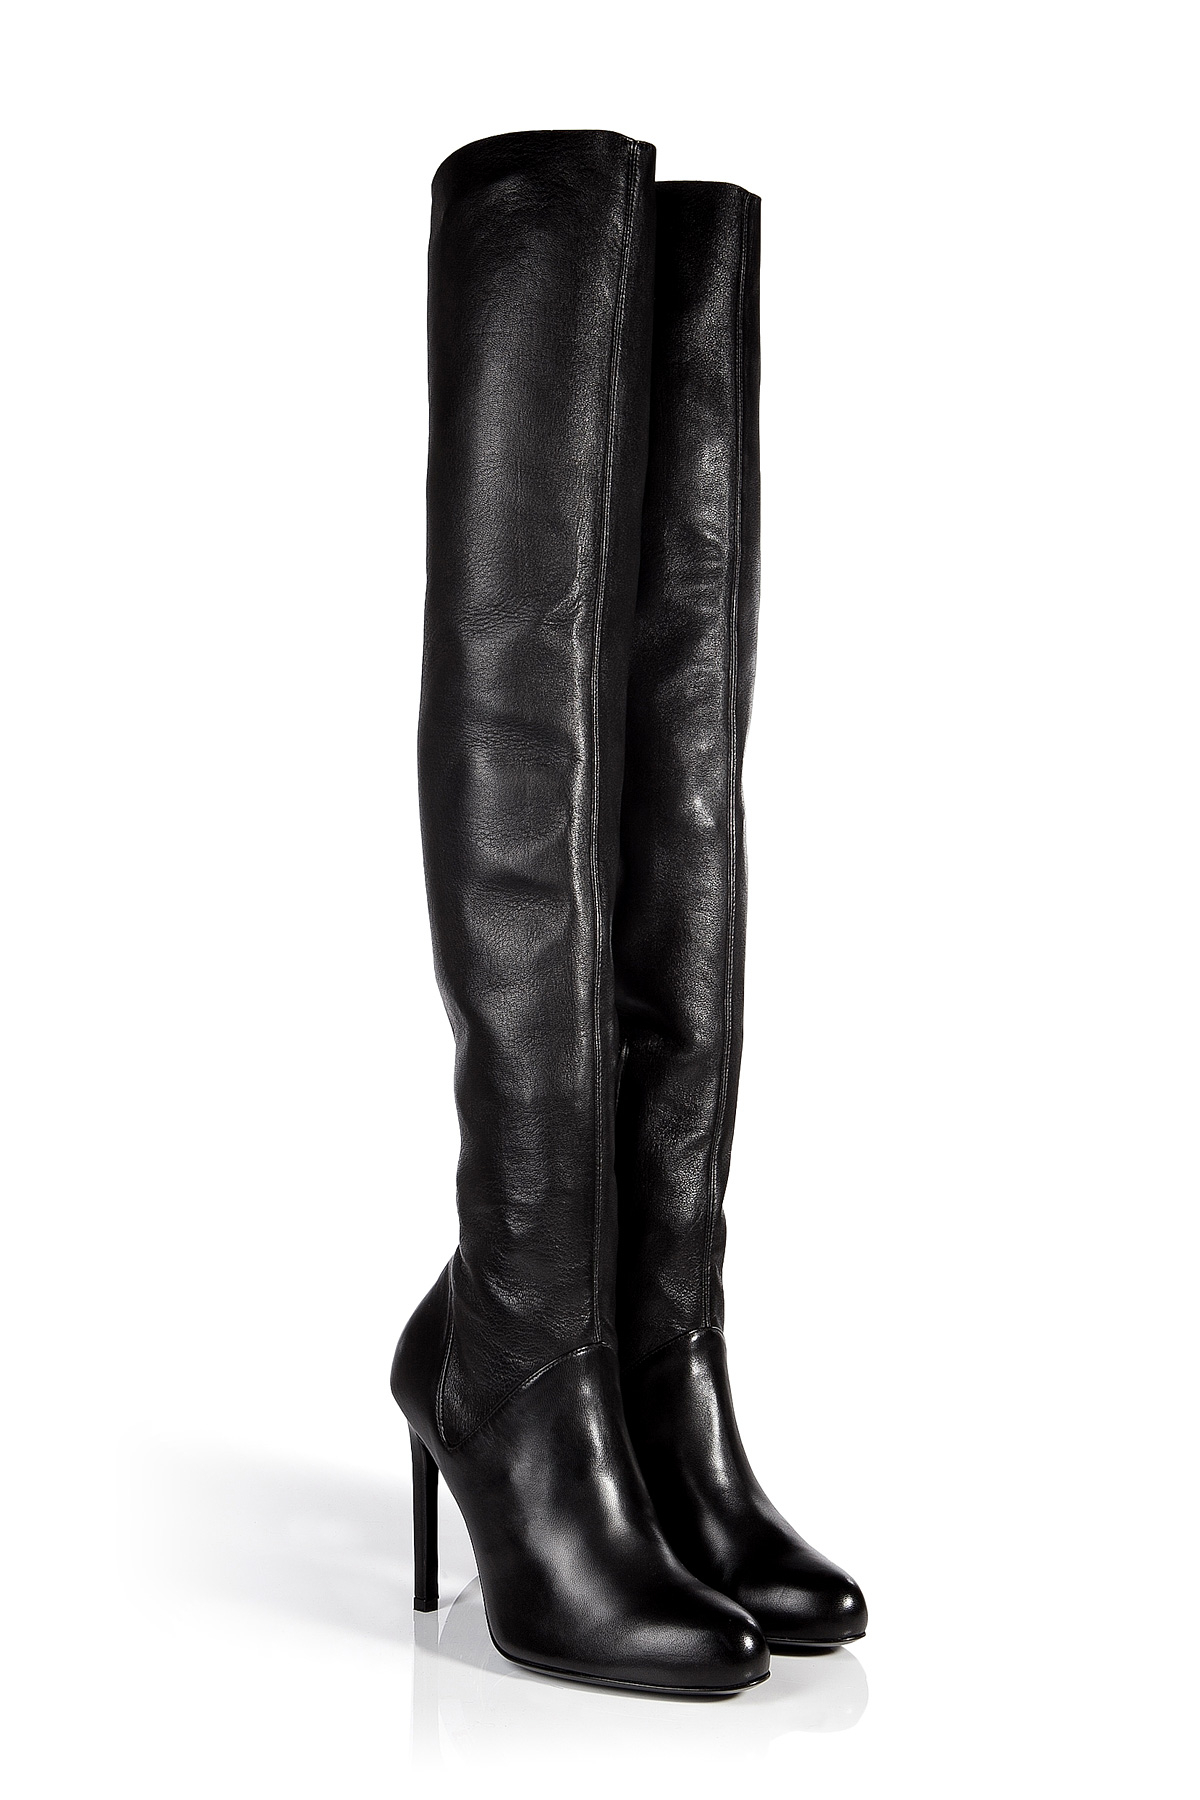 Ermanno Scervino Lace-Up Over-The-Knee Boots cheap price outlet sale very cheap cheap online sale free shipping sale best seller free shipping cheapest price 1G5zd